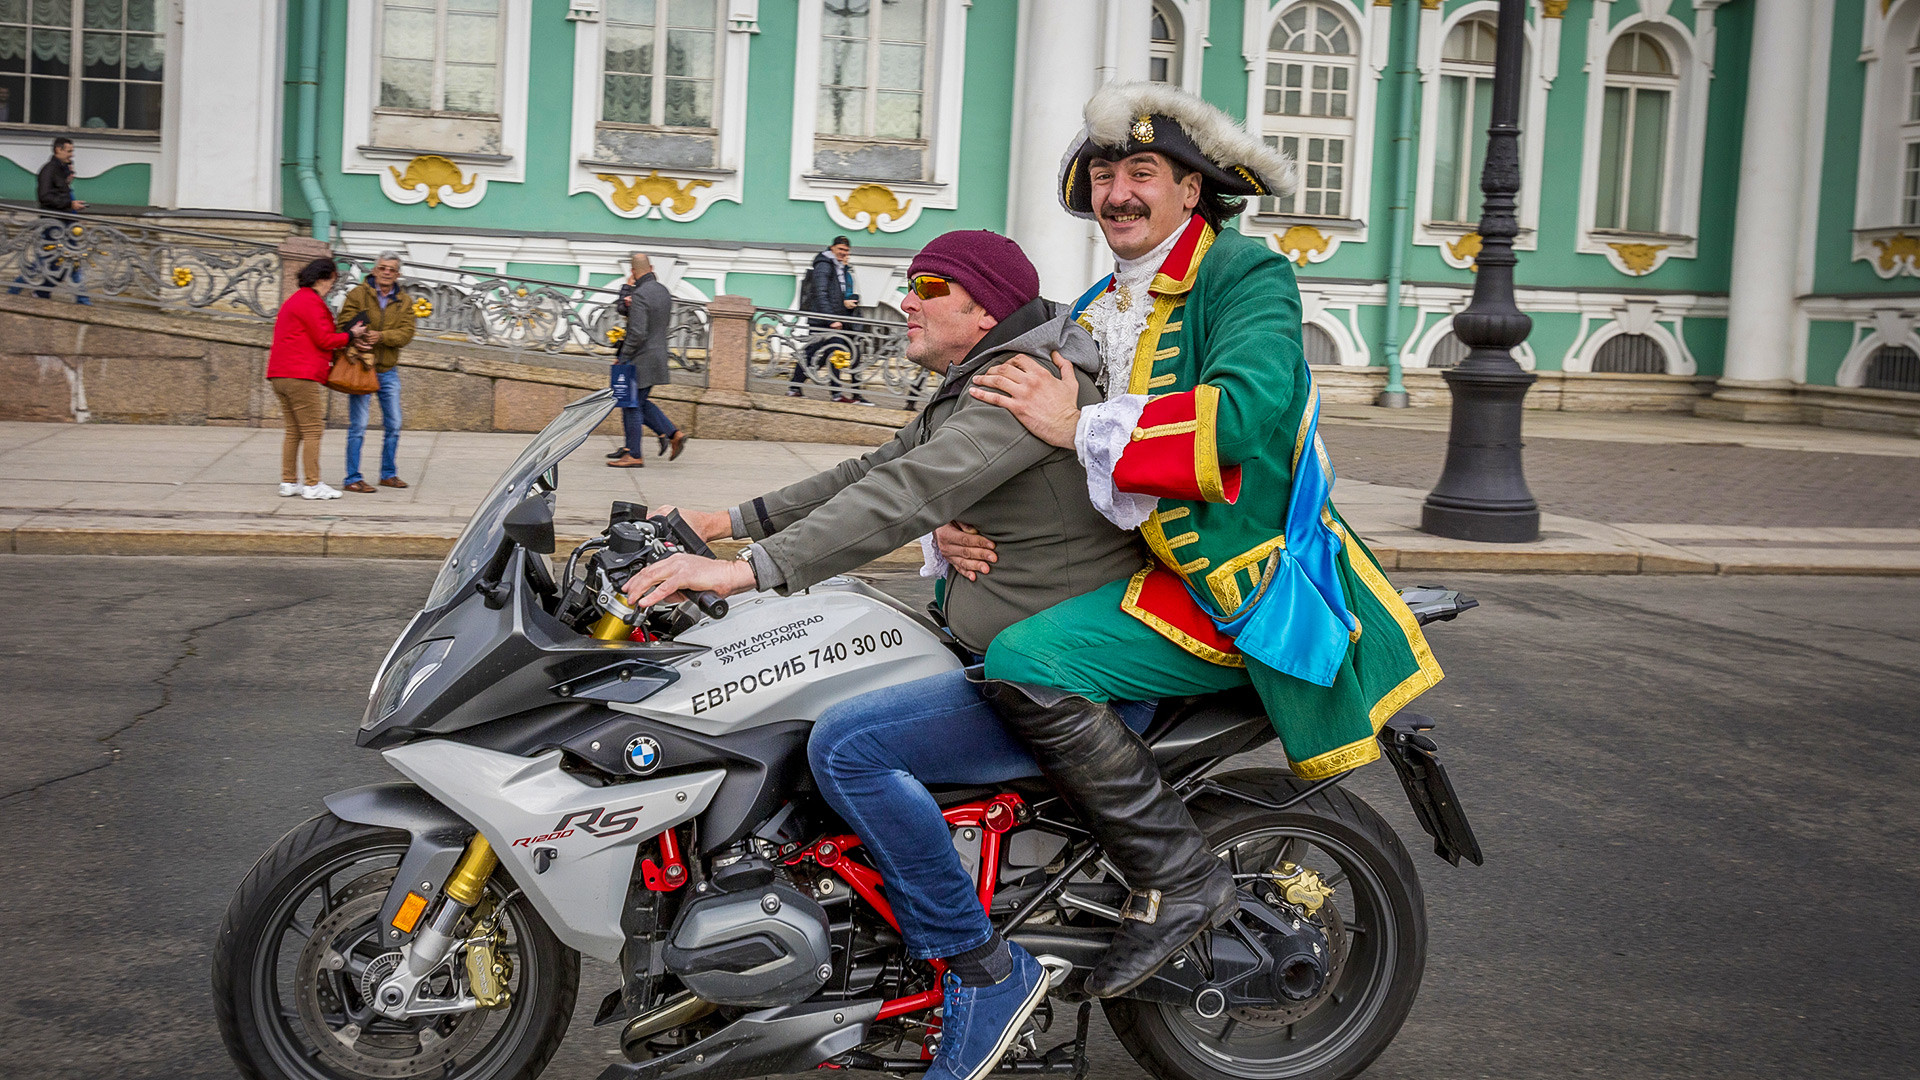 Peter the Great at the Palace square with the tourist from The Netherlands. St. Petersburg.